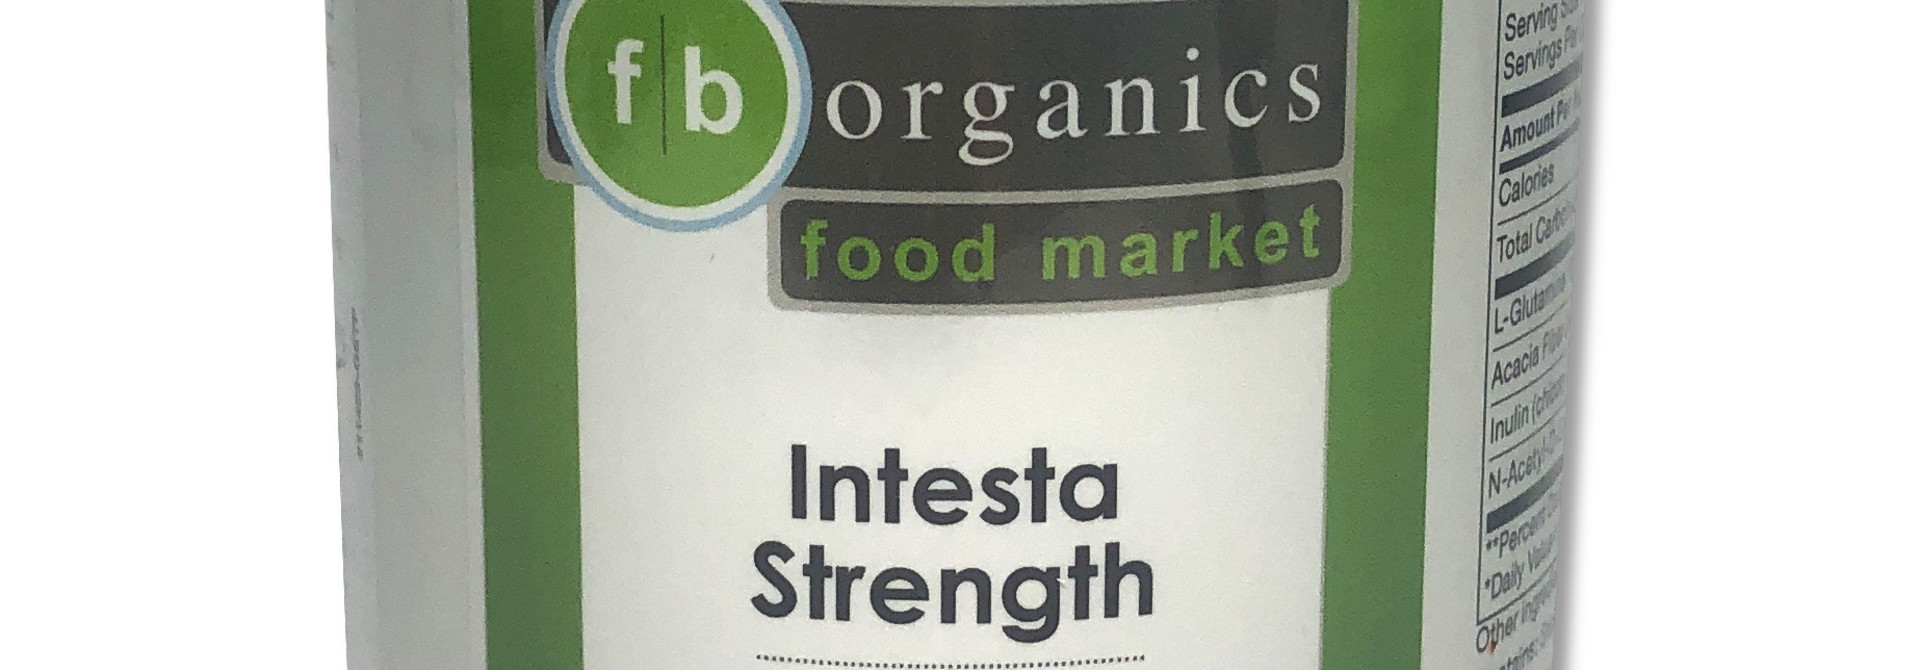 Intesta Strength